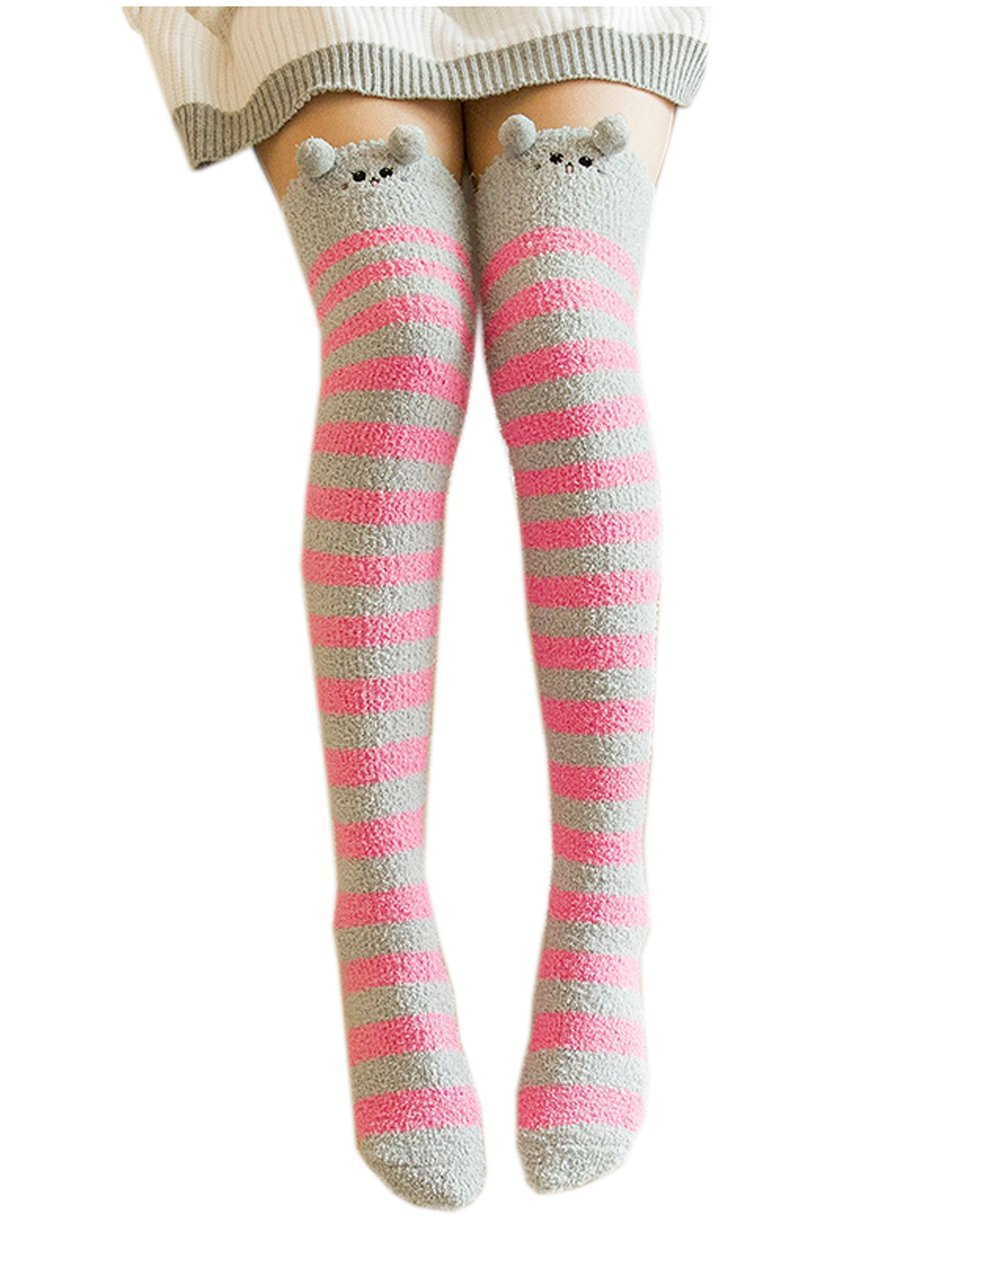 Girl's Leg Warmers Soft Warm Animal Coral Fleece Thigh High Long Striped Socks, Best Christmas Gift (Gray Cat)